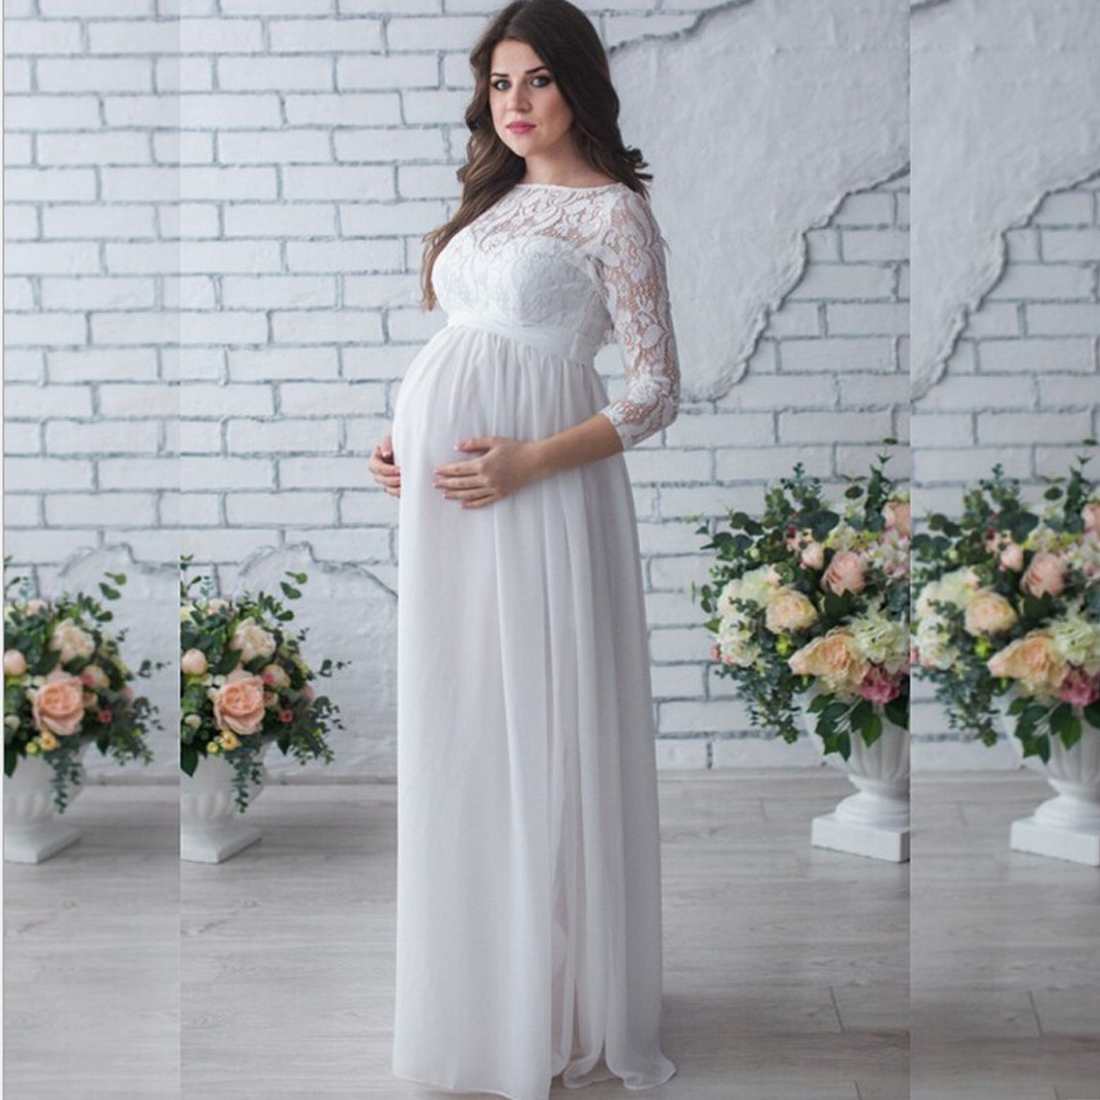 YJSFG HOUSE New Fashion Pregnant Women Lace Dresses Gown Maxi White ...